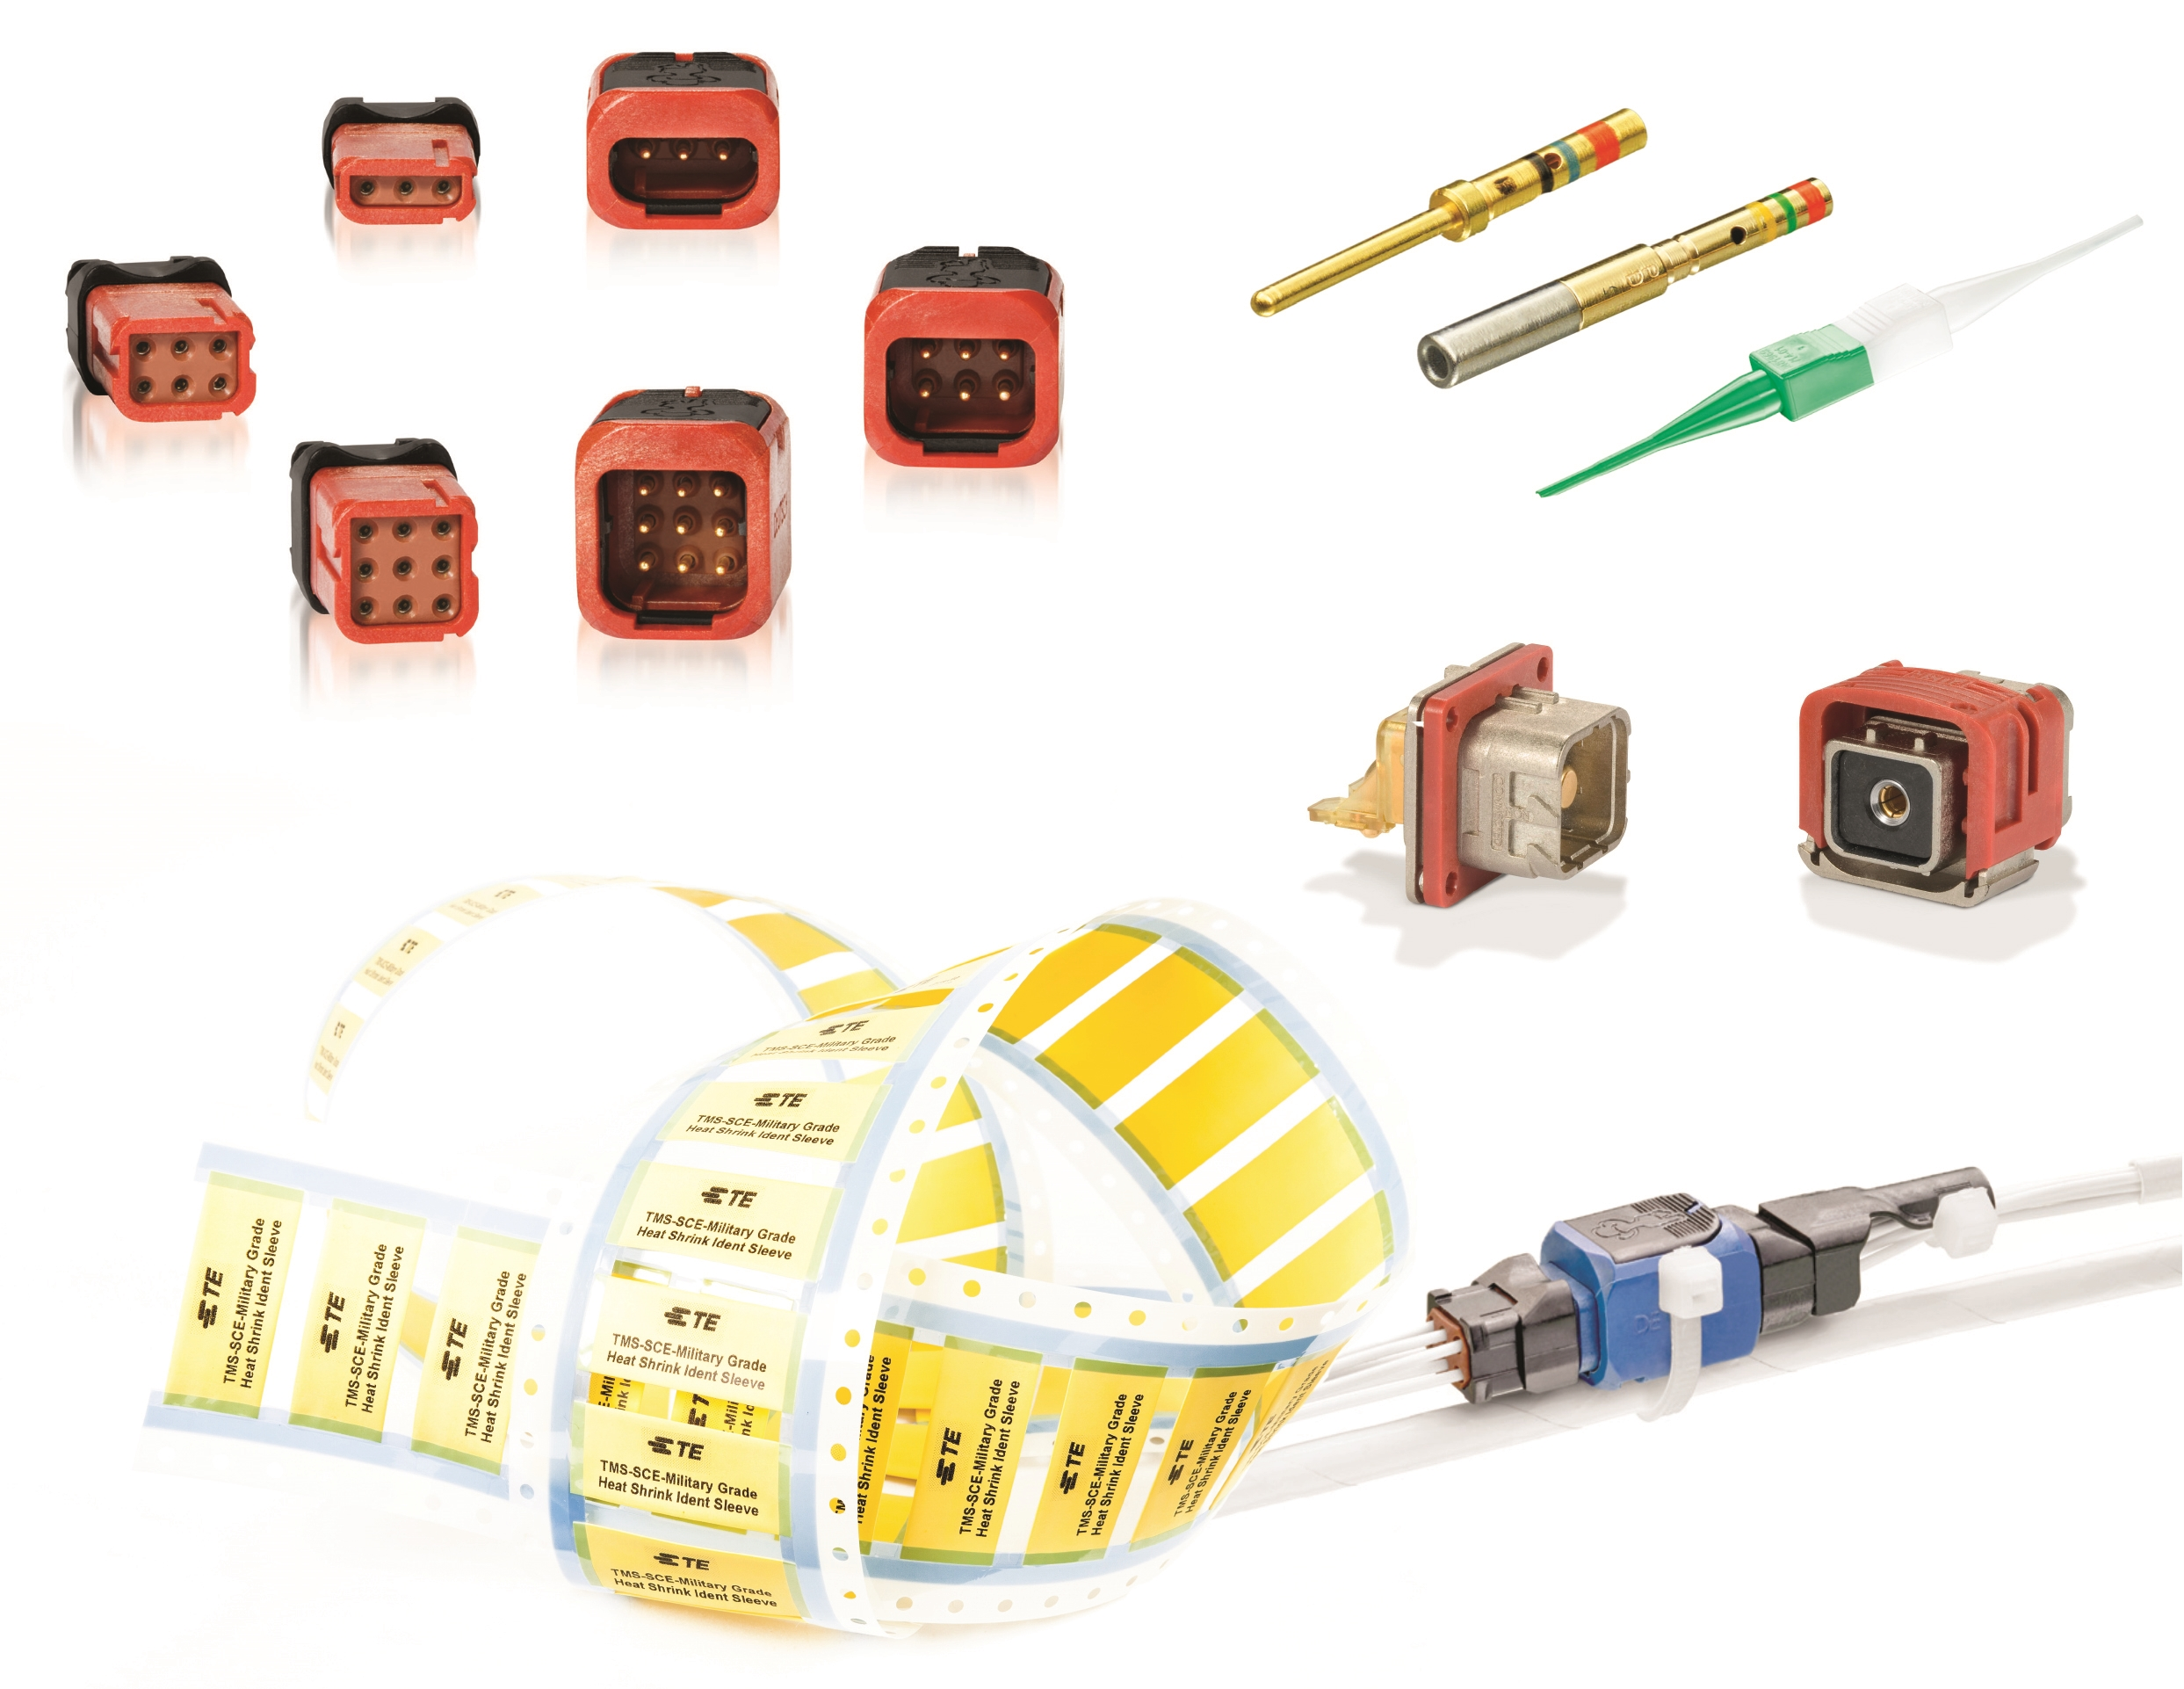 Cable Ties, Protective Sleeving, Bracket Wiring, Clamps